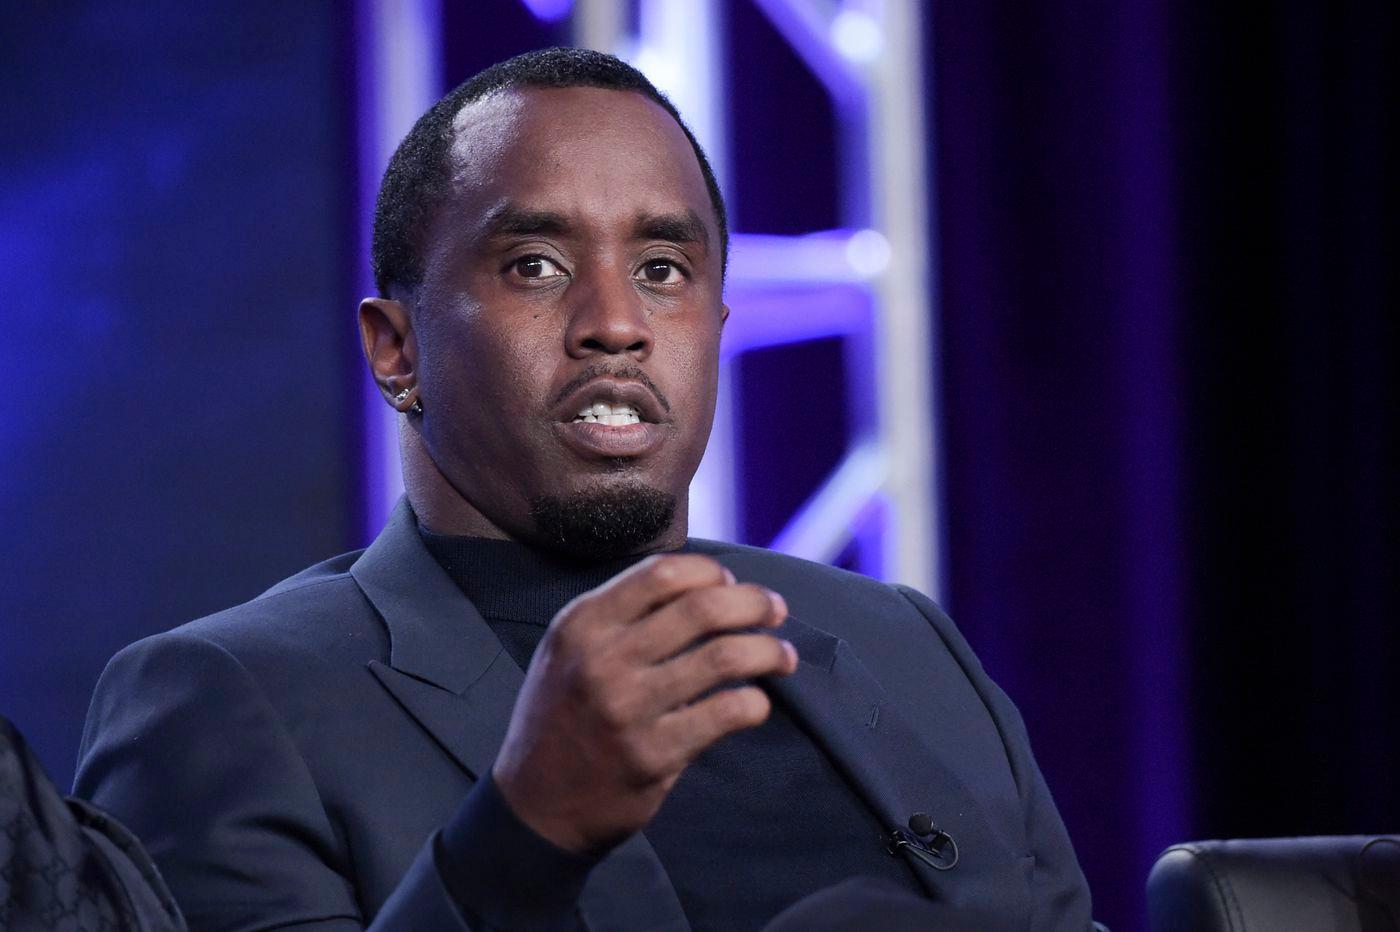 Diddy Shows Fans A Must Watch Live For People All Over The World